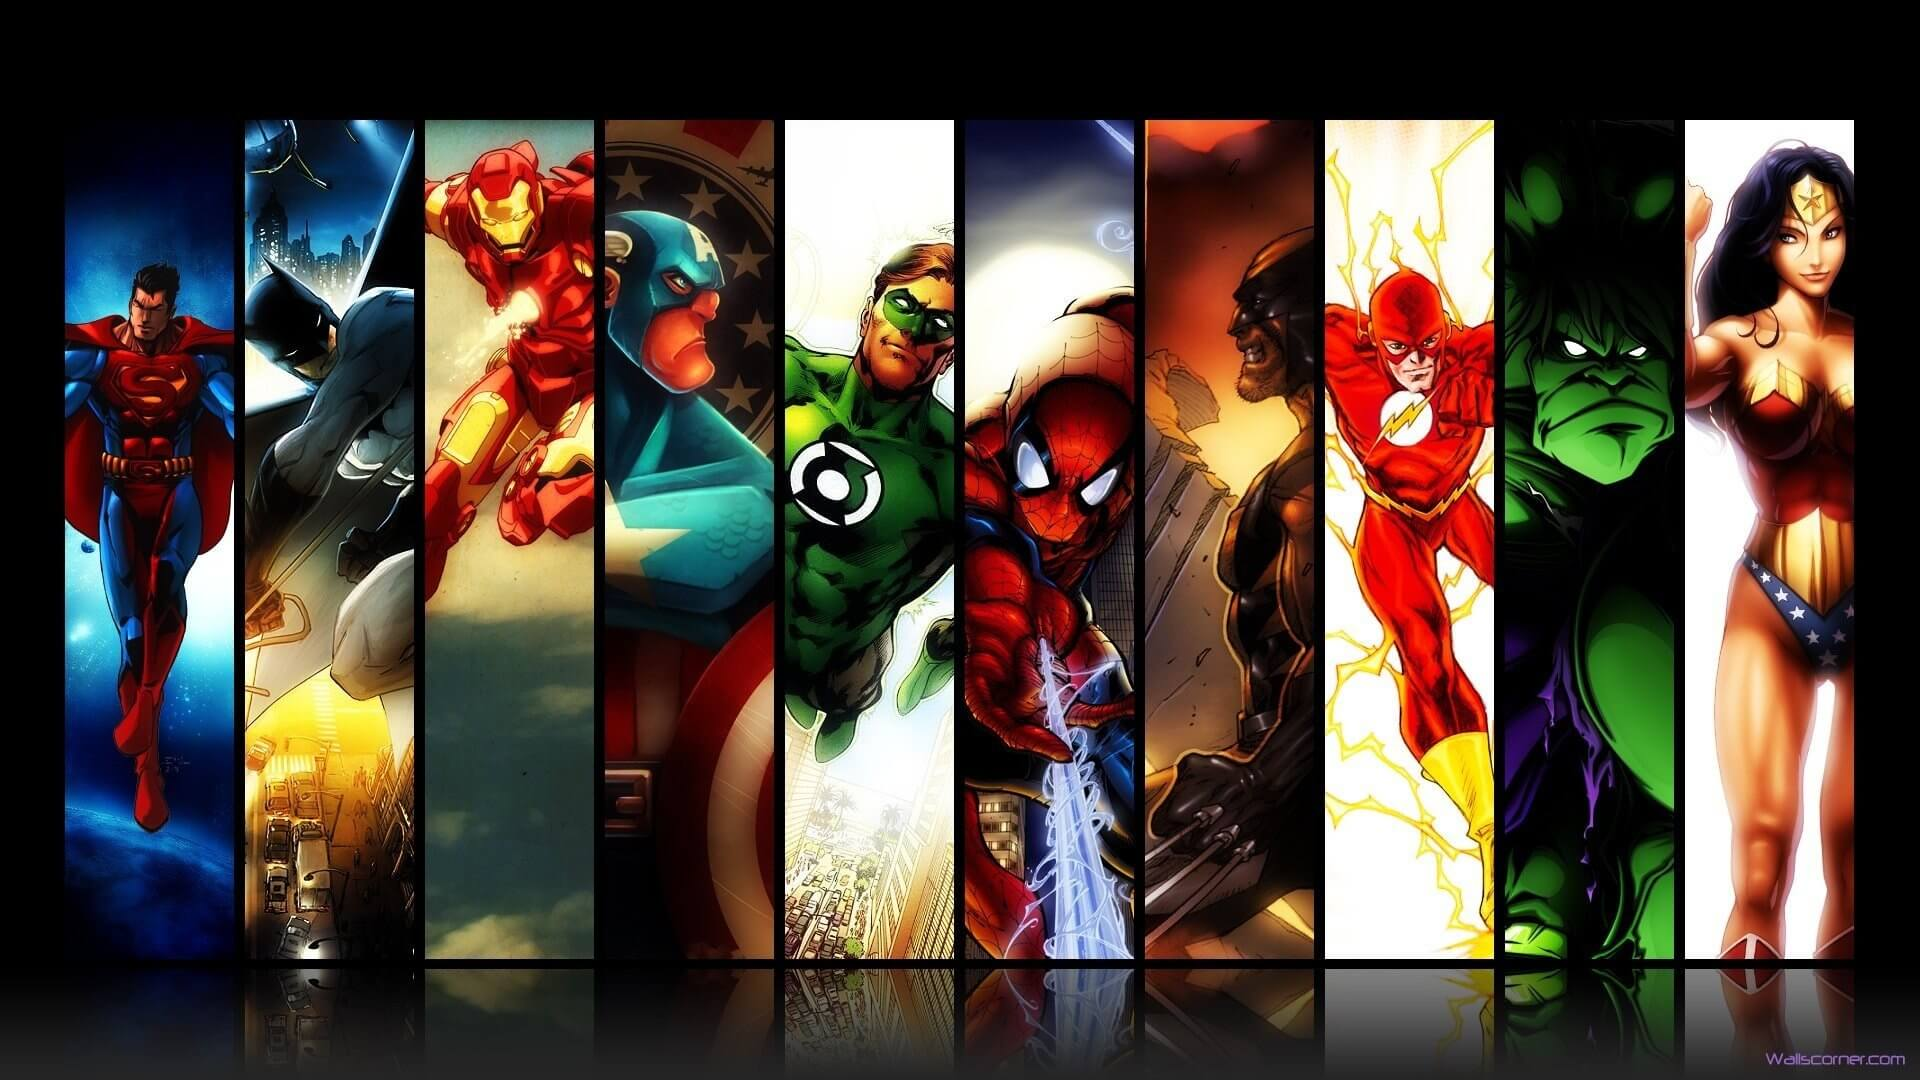 marvel-dc-comics-superman-batman-iron-man-spider-man-green-lantern-captain-america-wolverine-the-flash-hulk-wonder-woman